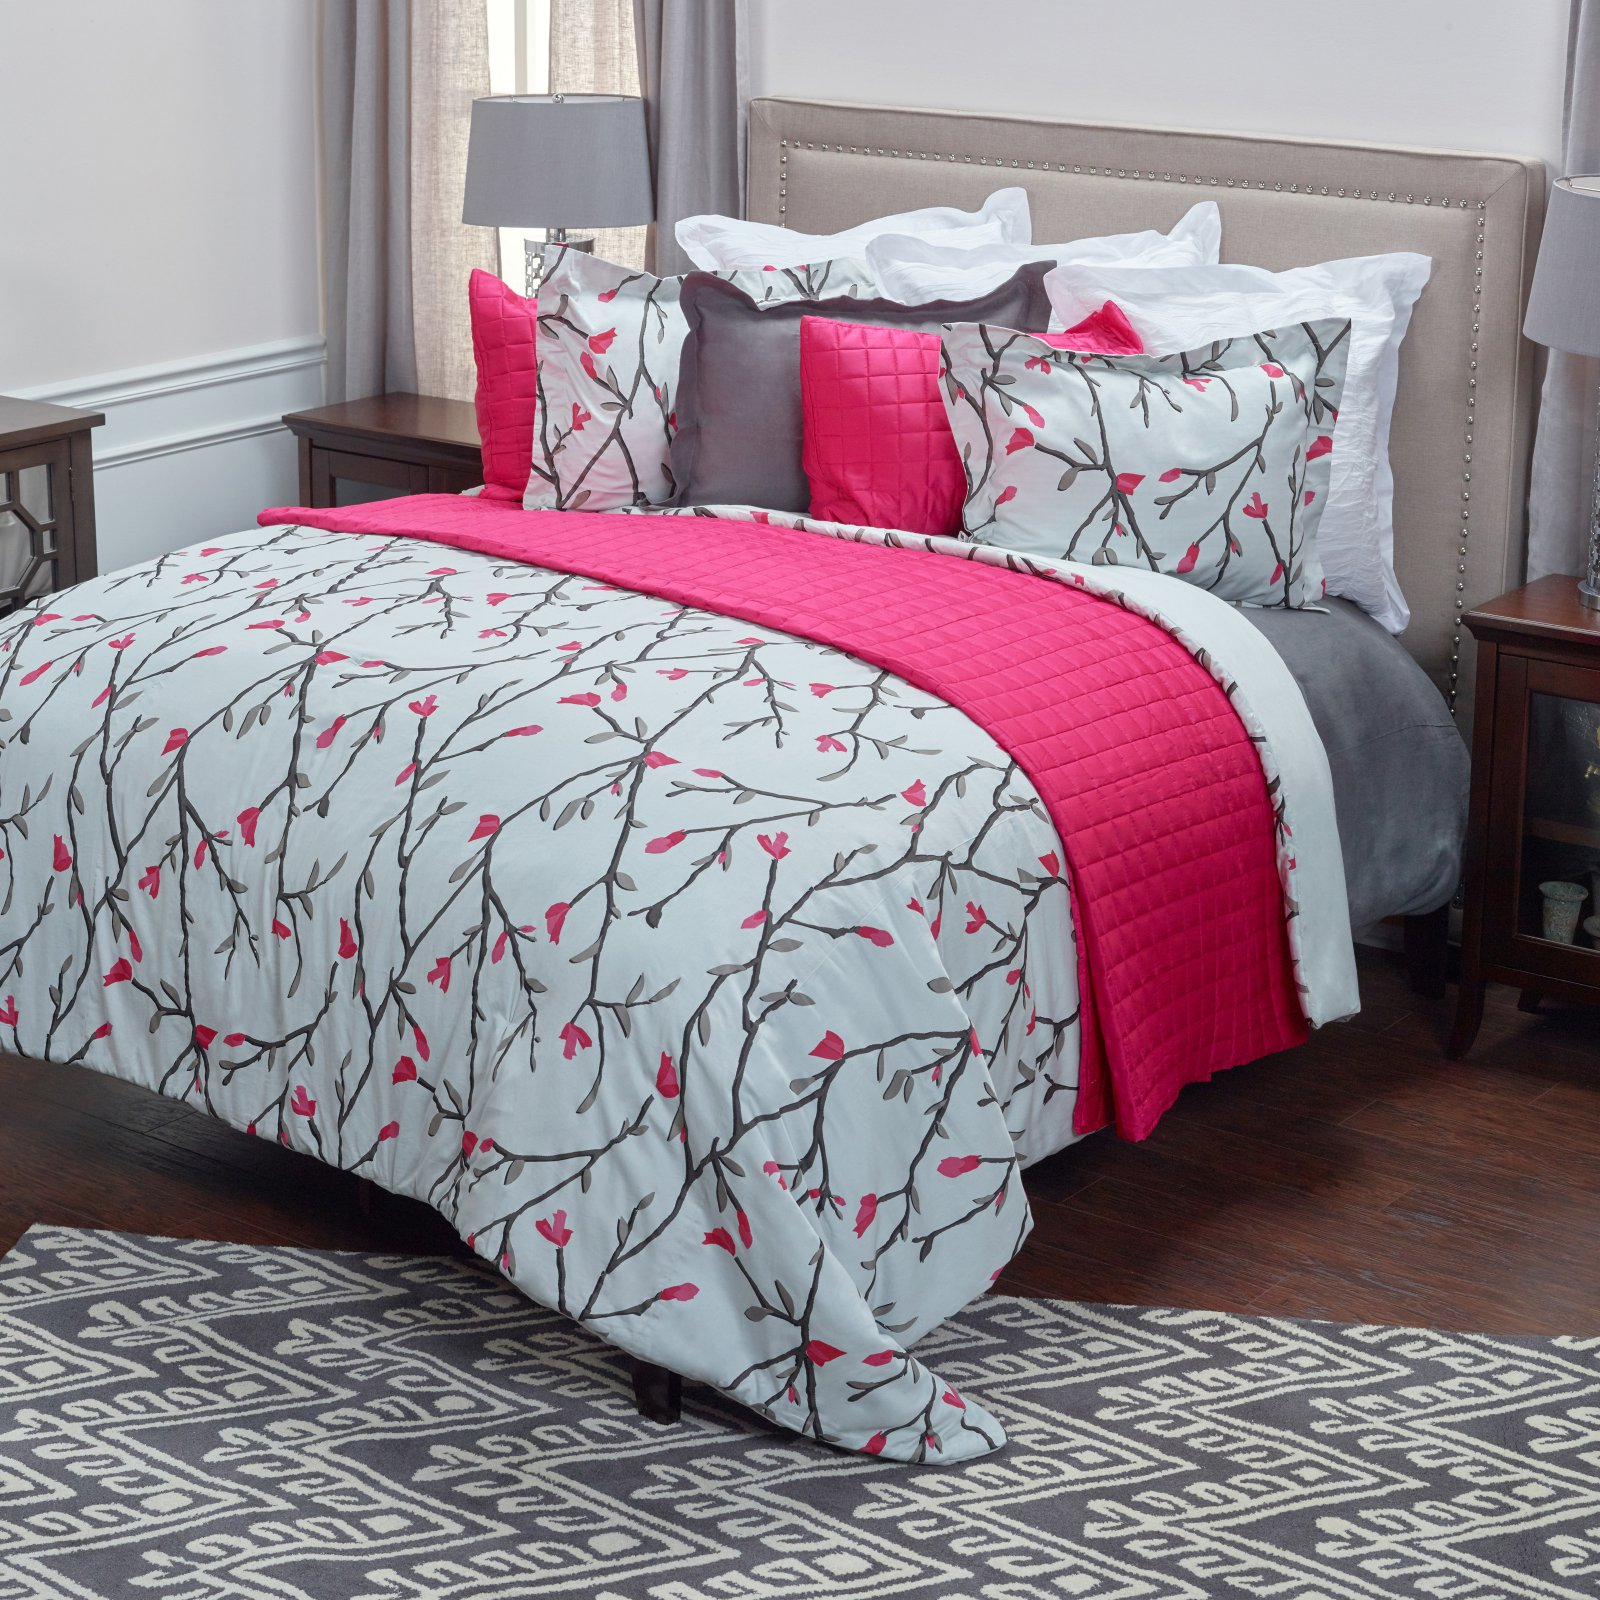 3-Pc Comforter Set in Gray (Queen)